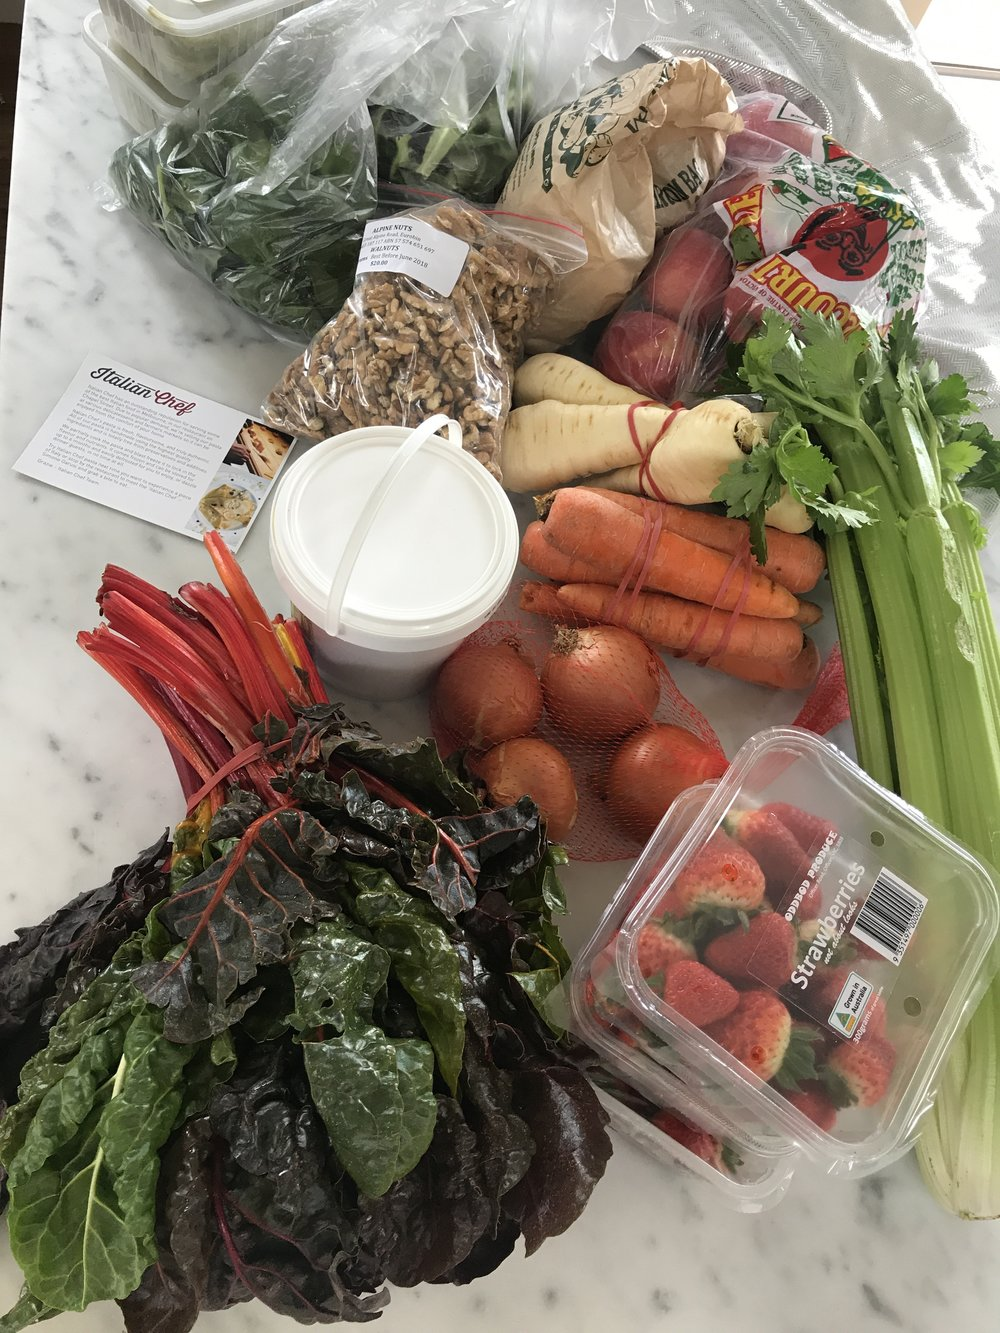 The produce purchased on this visit.  Silverbeet, strawberries, onions, celery, organic yogurt, carrots, parsnip, walnuts, apples, mushrooms, spinach, lettuce, and home made ravioli pasta, which is in the freezer, and a recipe card from my gorgeous Italian pasta man.